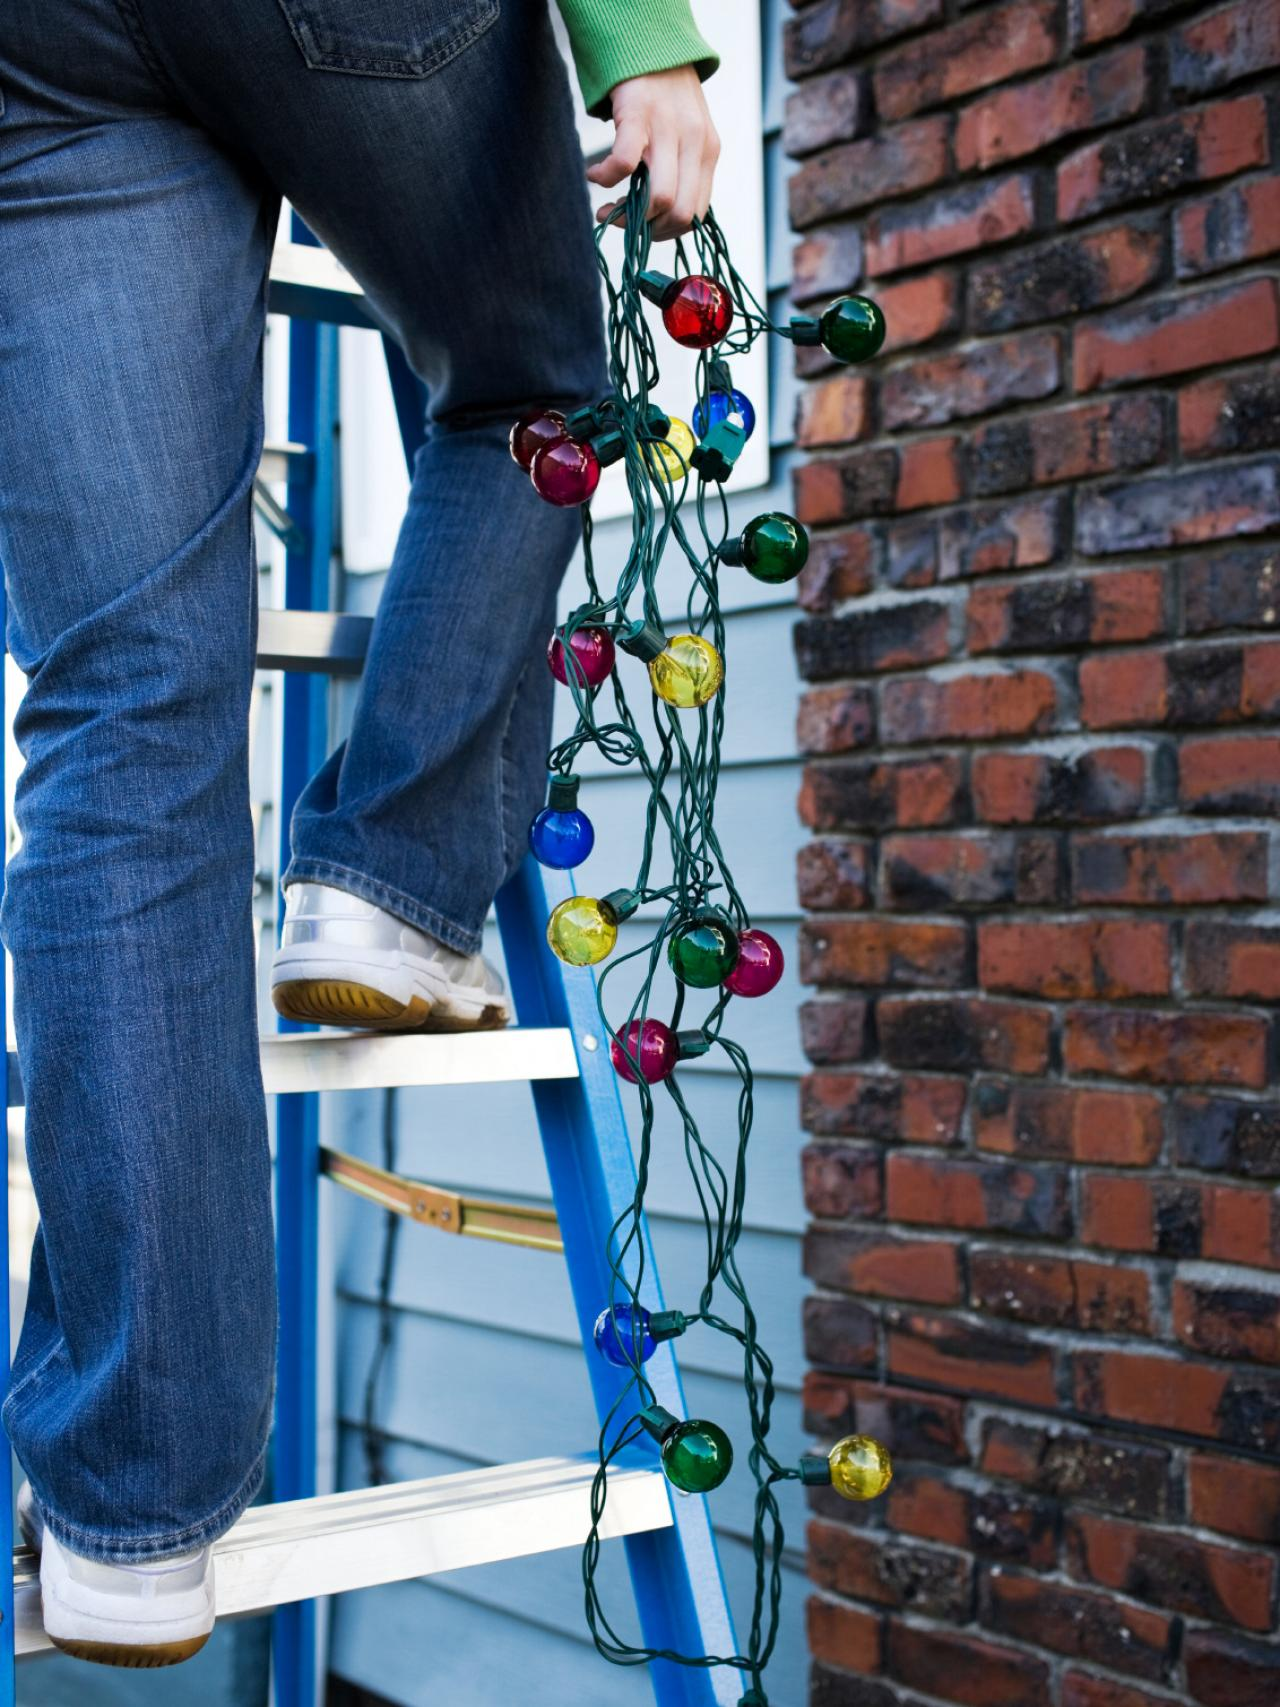 How to hang christmas lights diy be cautious when installing exterior lighting aloadofball Images